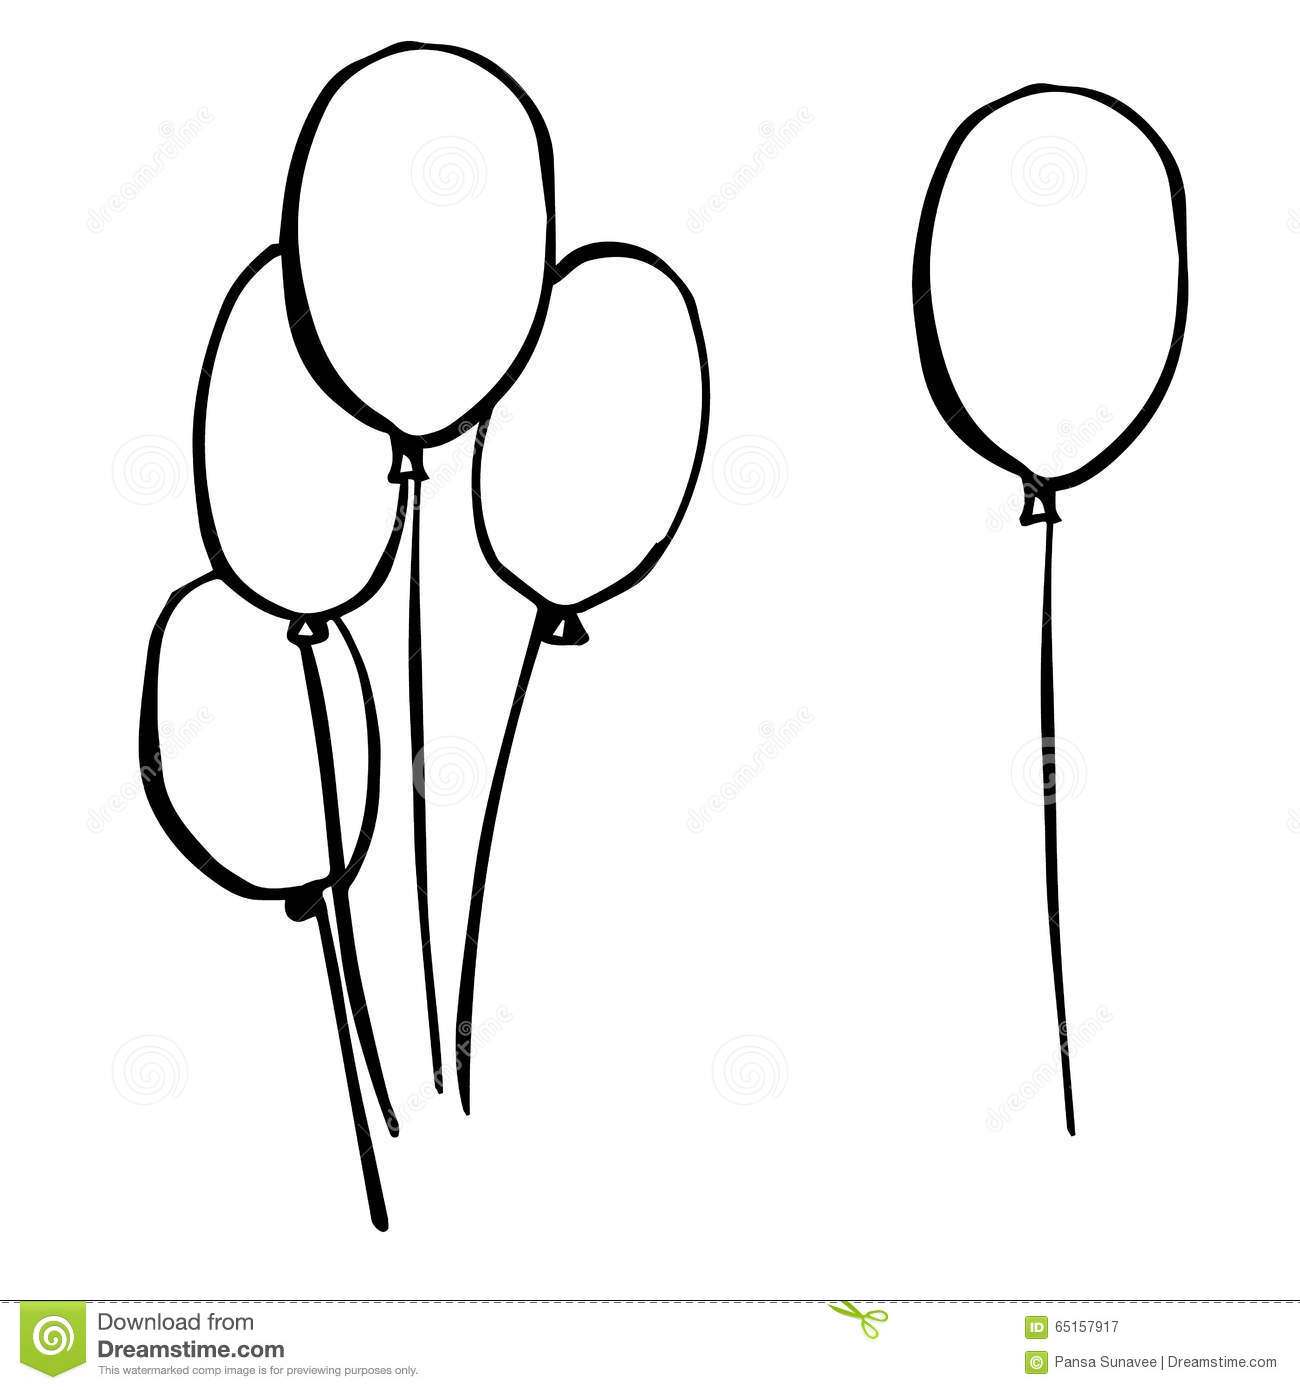 freehand sketch illustration of balloons